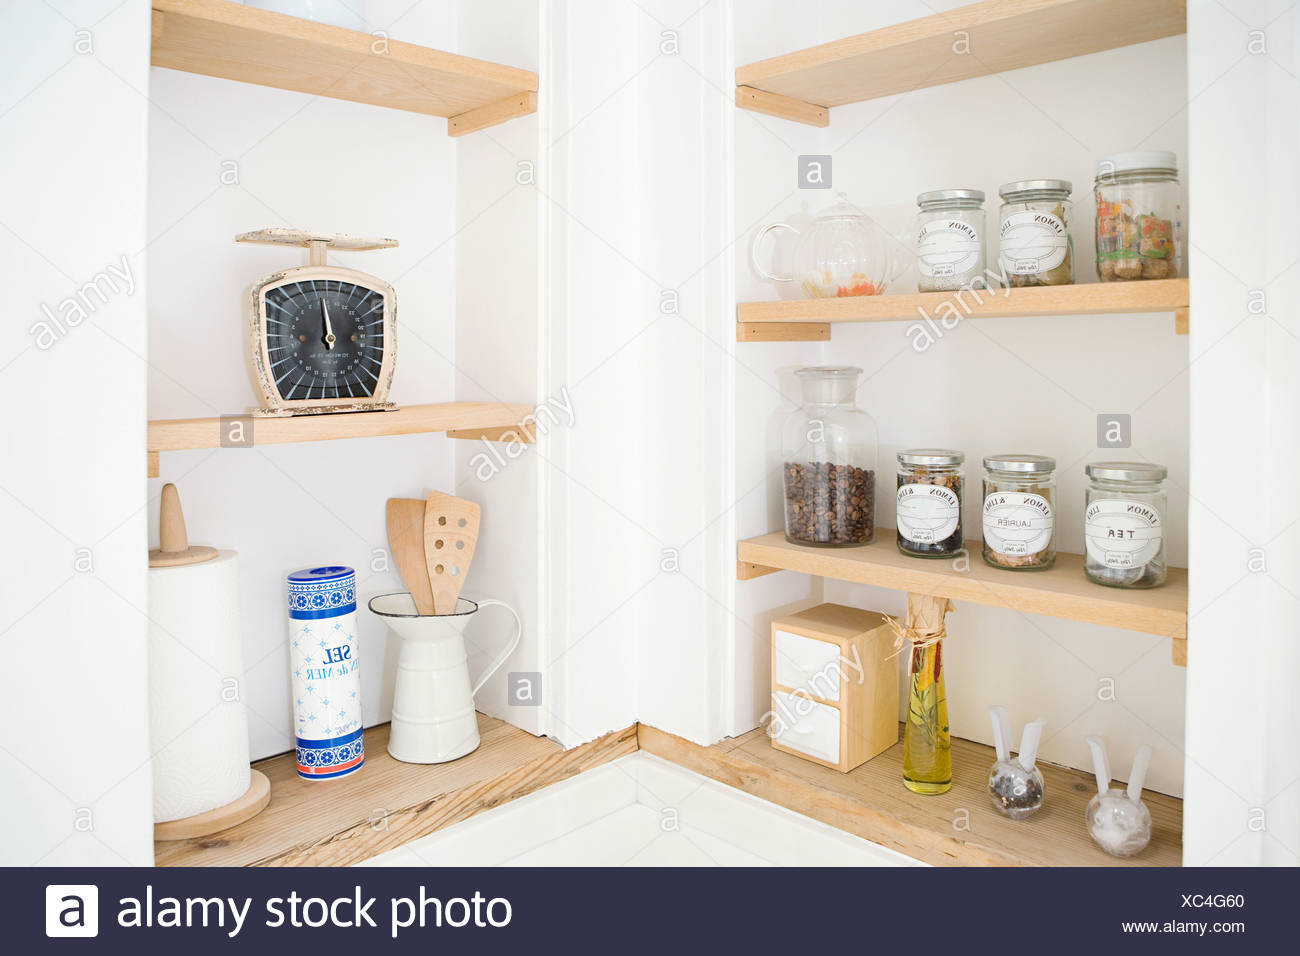 Food Shelves Stock Photos & Food Shelves Stock Images - Alamy